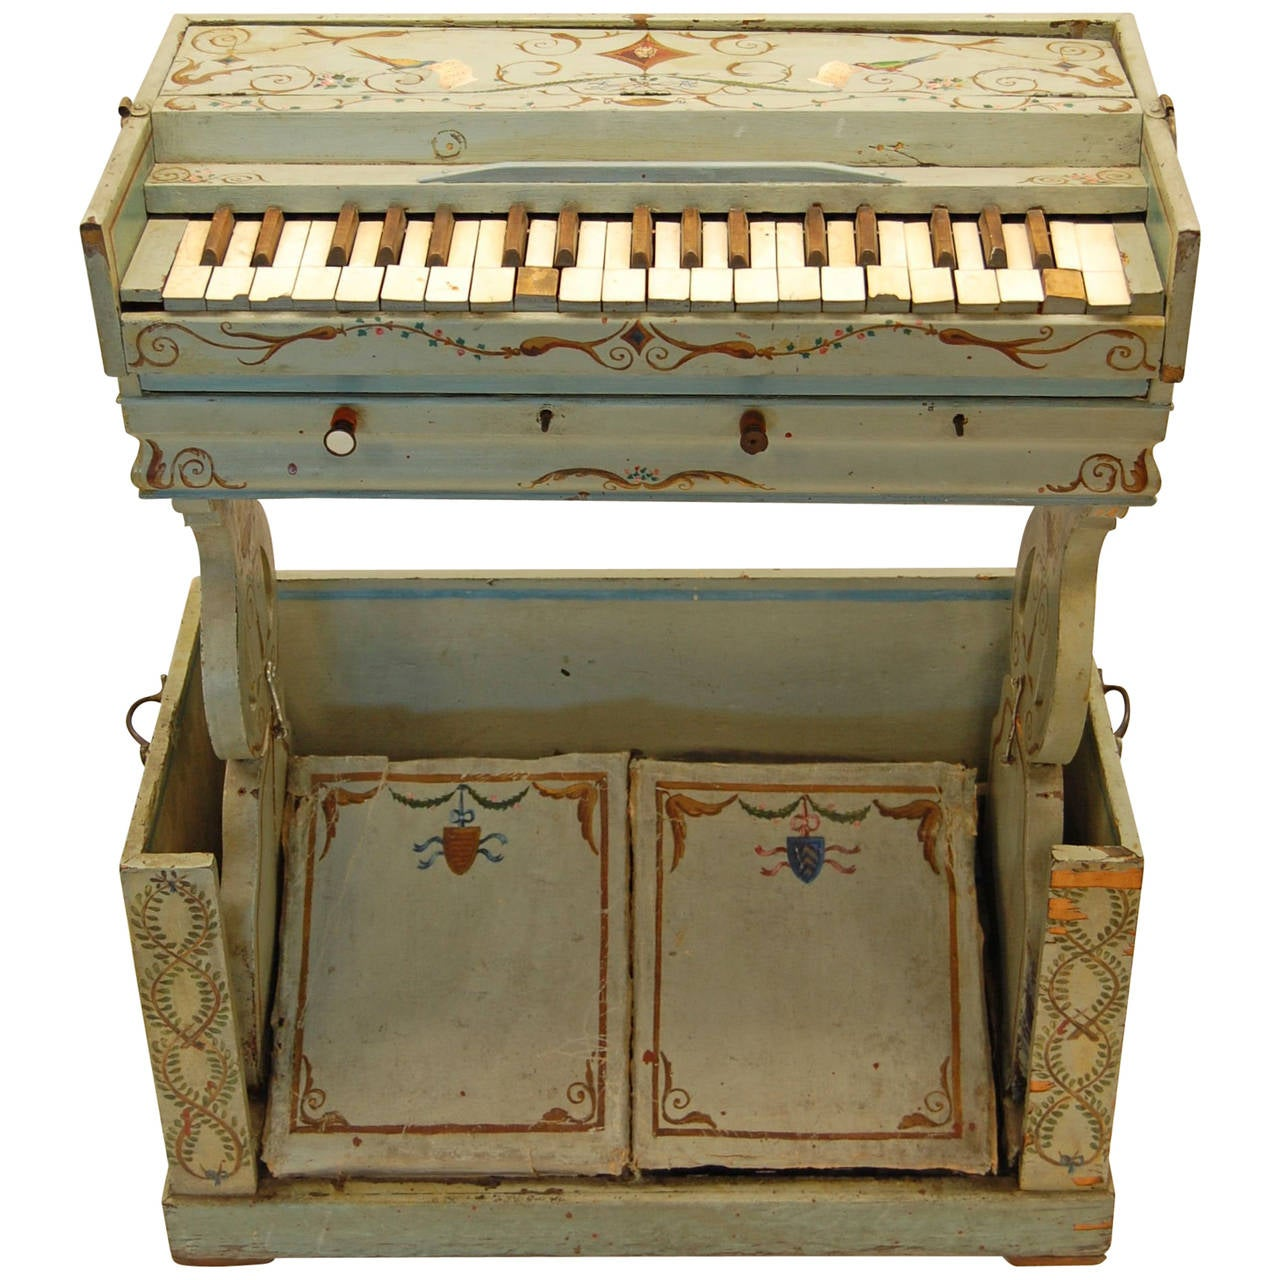 19th Century European Childs Pump Organ in Decoratively Painted Wood Case